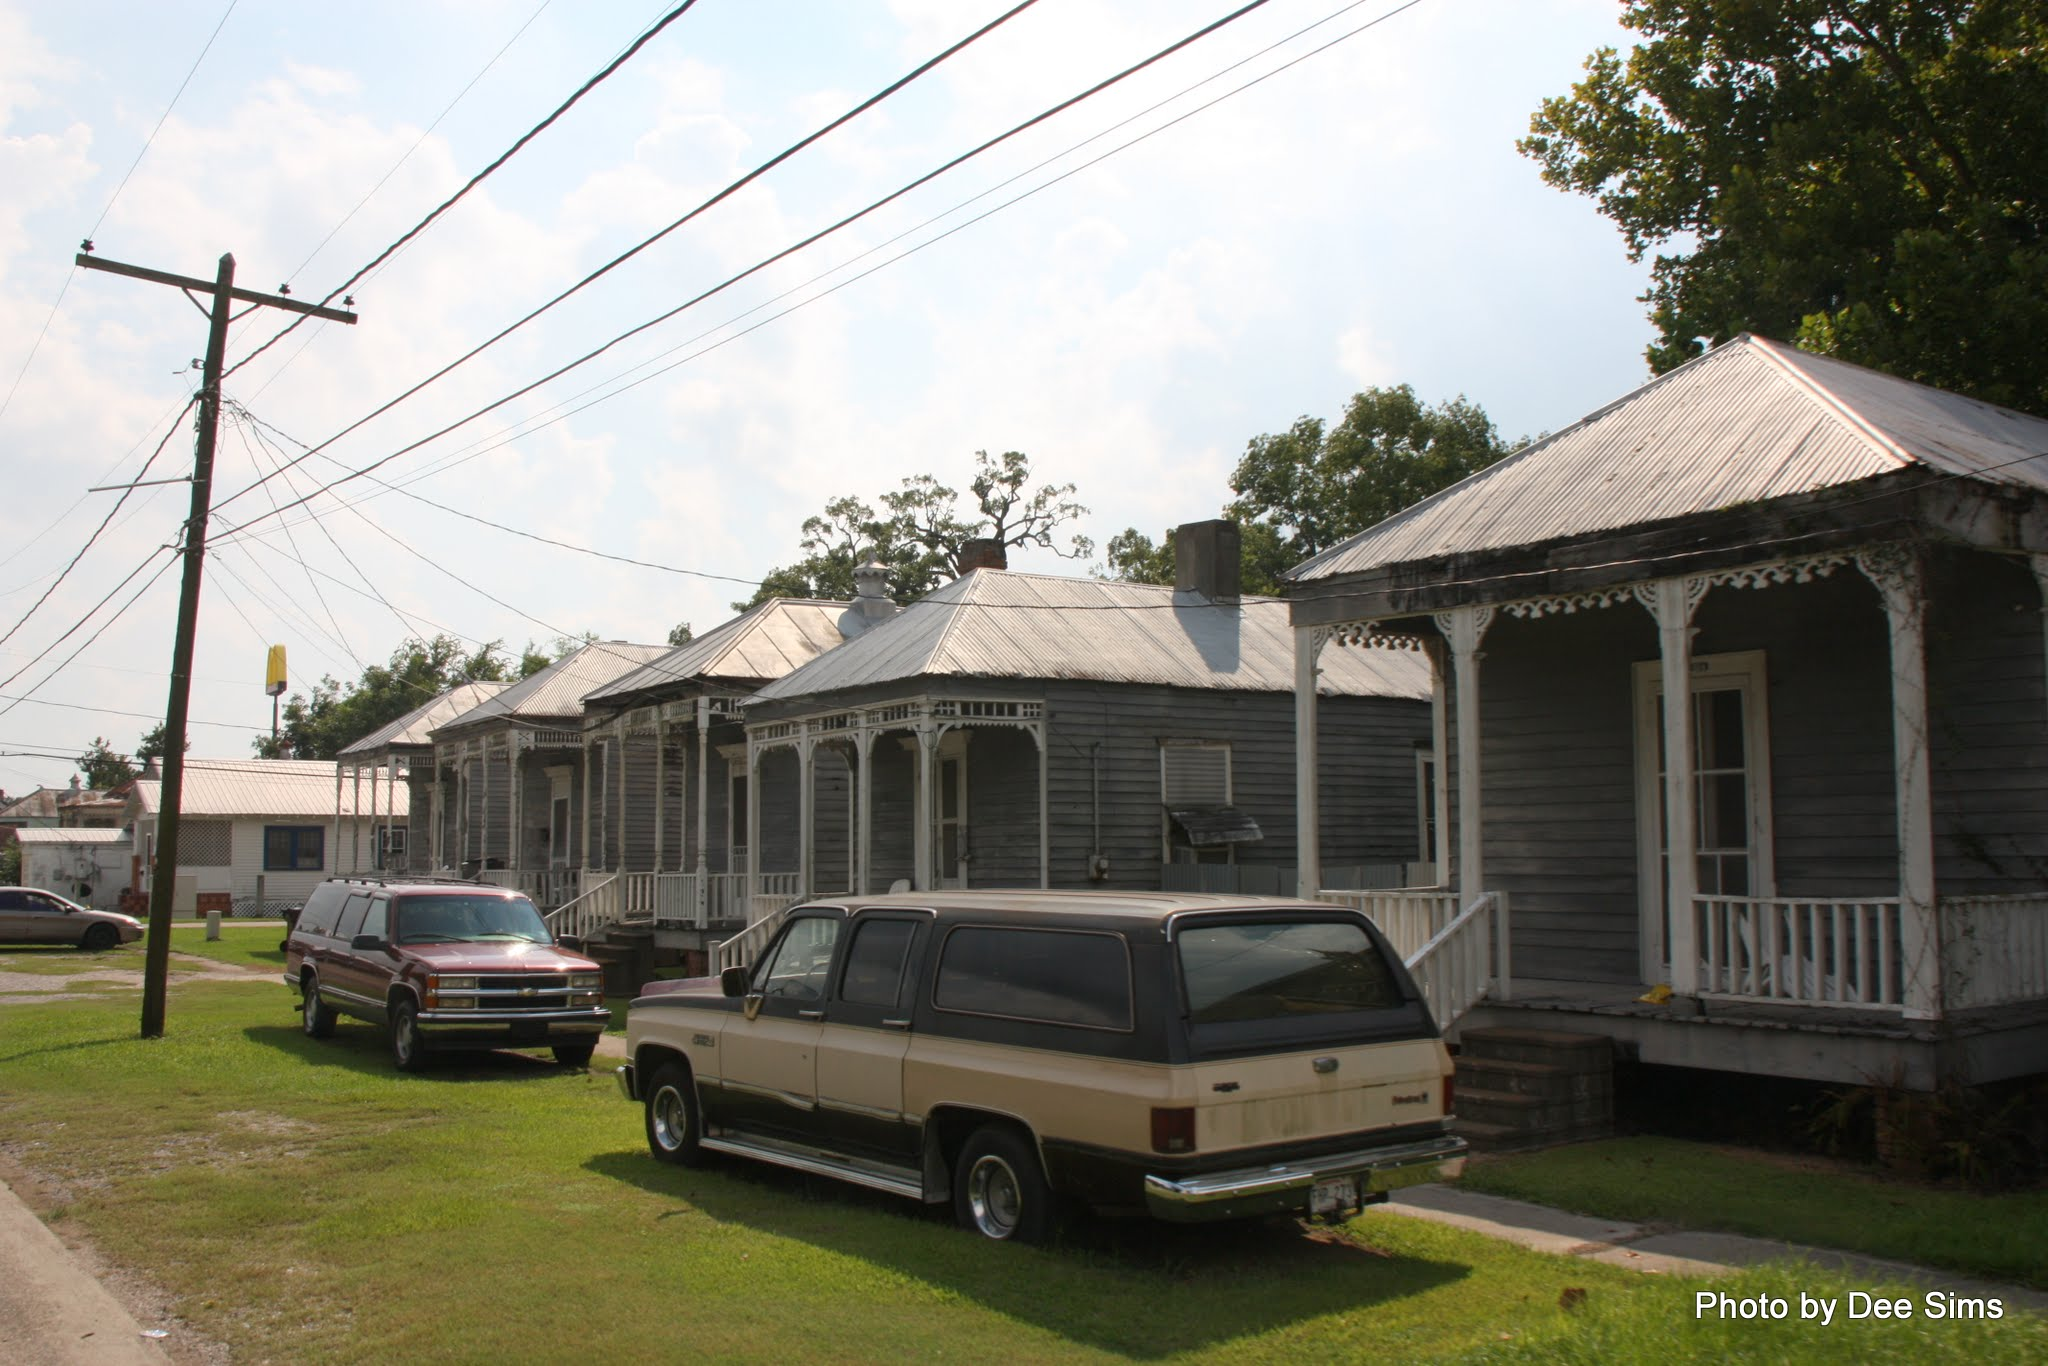 Photo: (Year 3) Day 63 - Houses in Donaldsonville